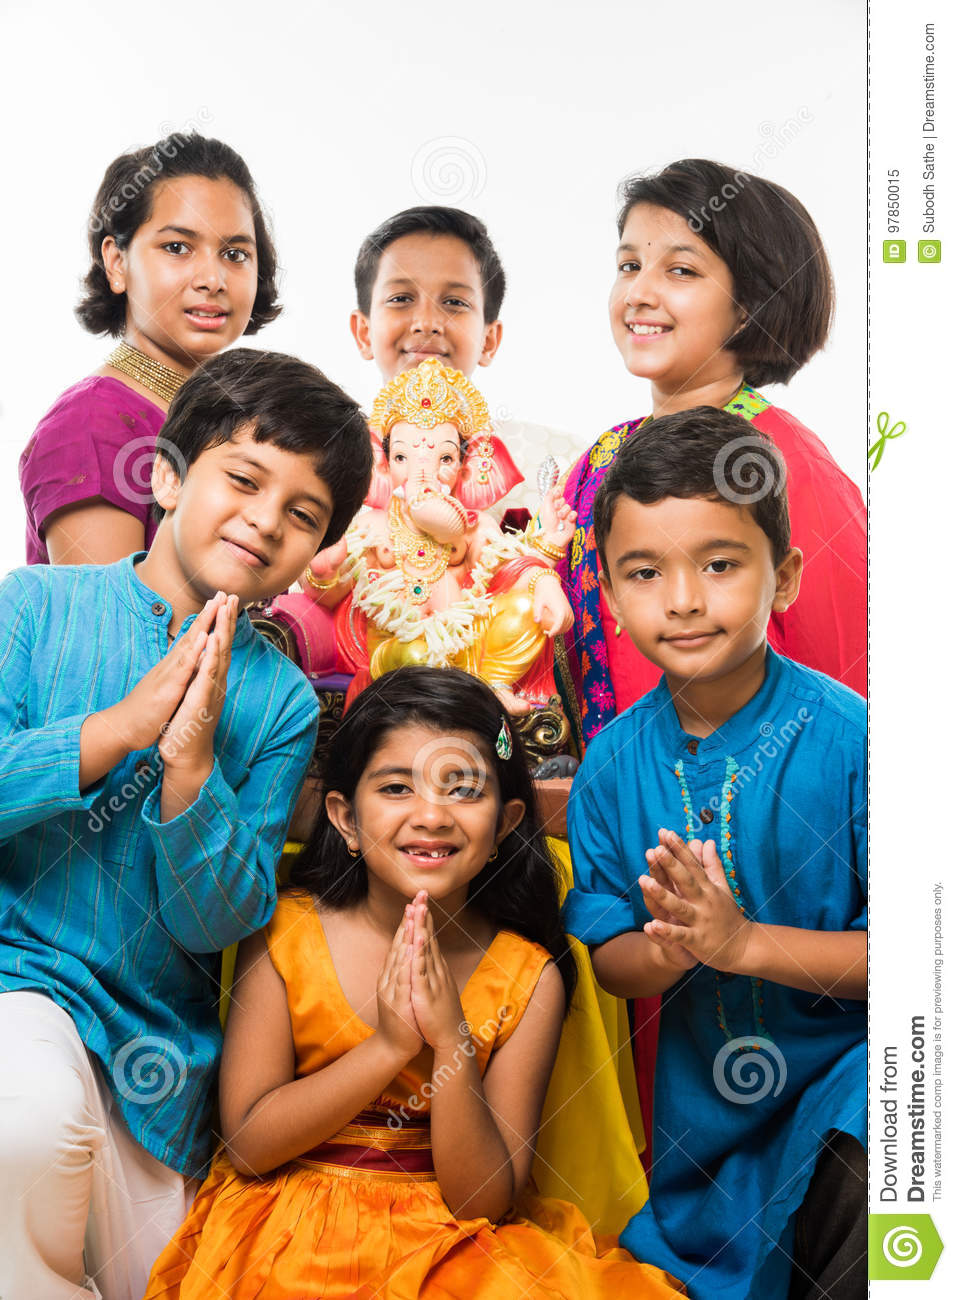 indian cute kids holding statue of lord ganesha or ganapati on